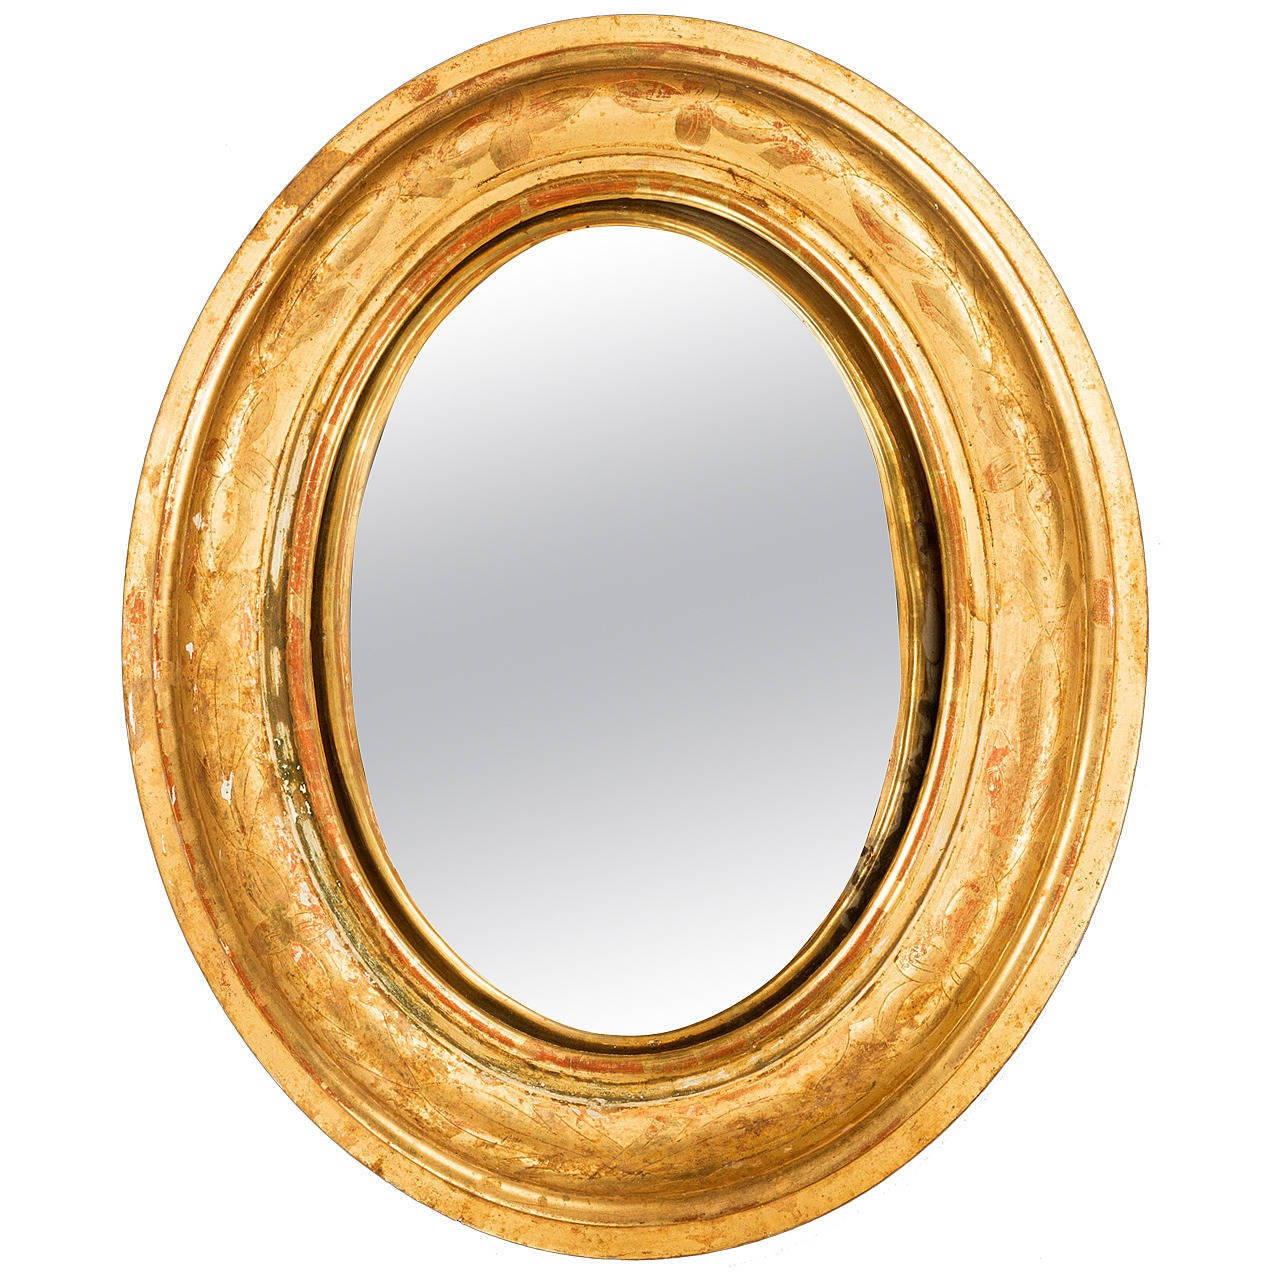 19th century small convex mirror for sale at 1stdibs for Convex mirror